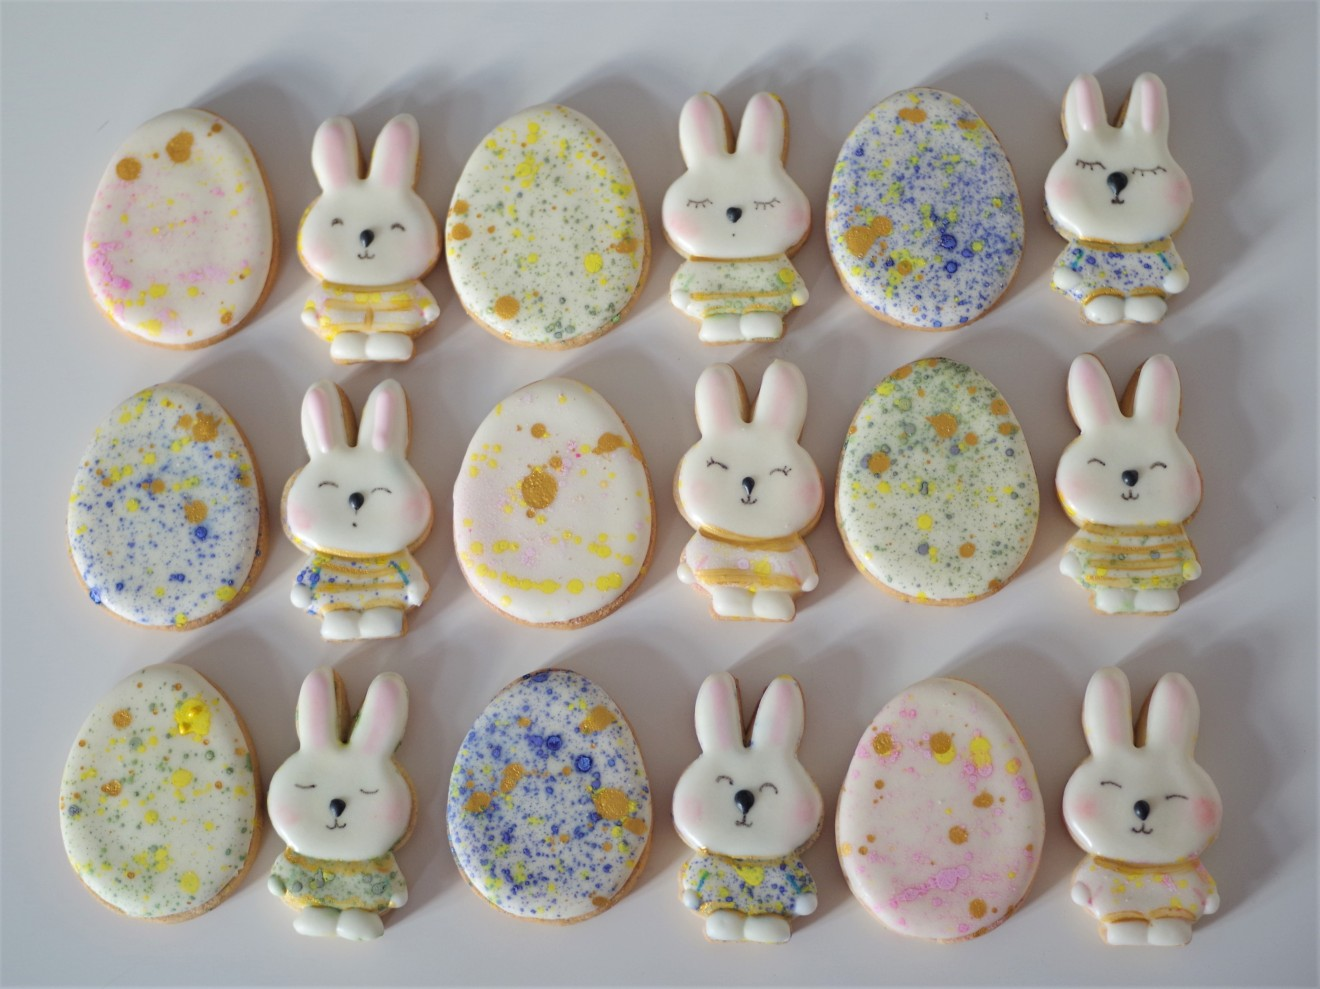 doctorcookies easter cookies (8).JPG